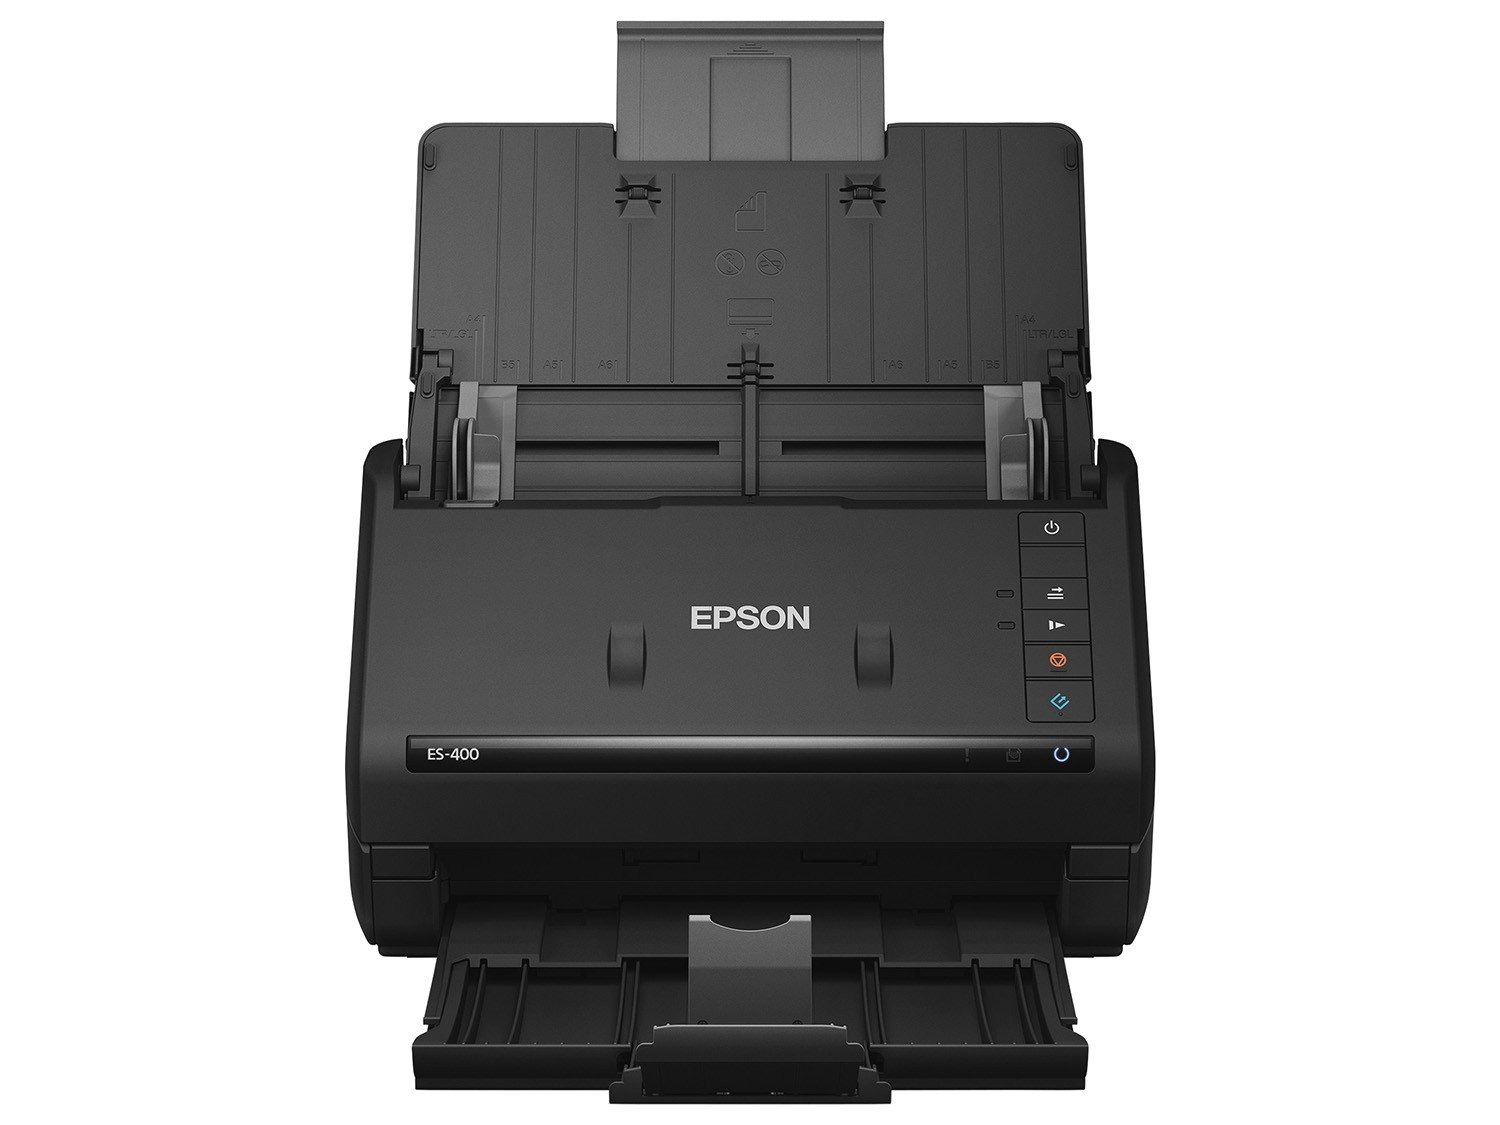 Foto 1 - Scanner de Mesa Epson WorkForce ES400 - 1200dpi